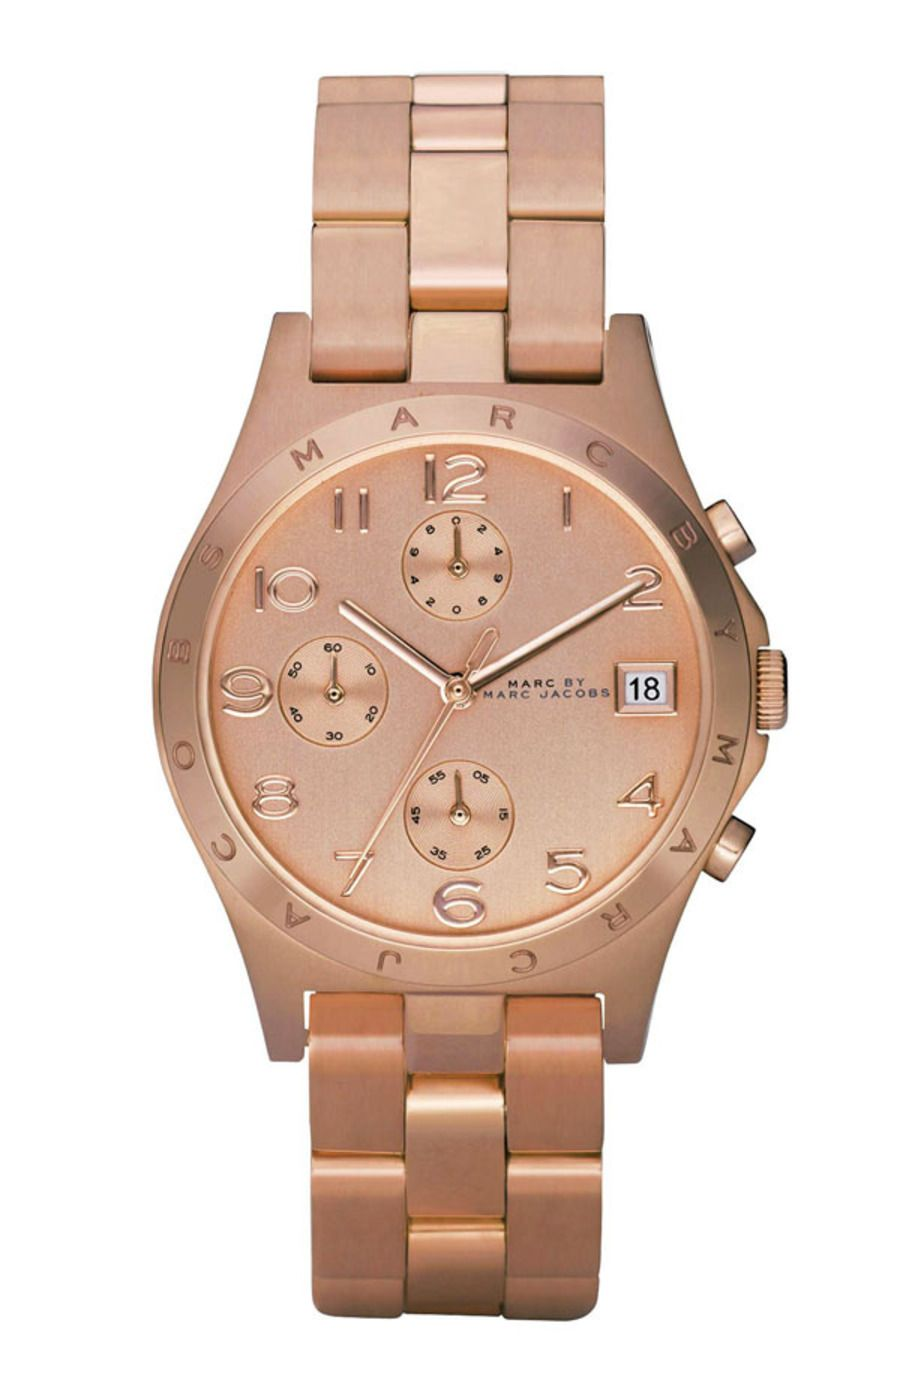 679f343d6e6f MARC BY MARC JACOBS WATCH  Michelle Coleman-HERS